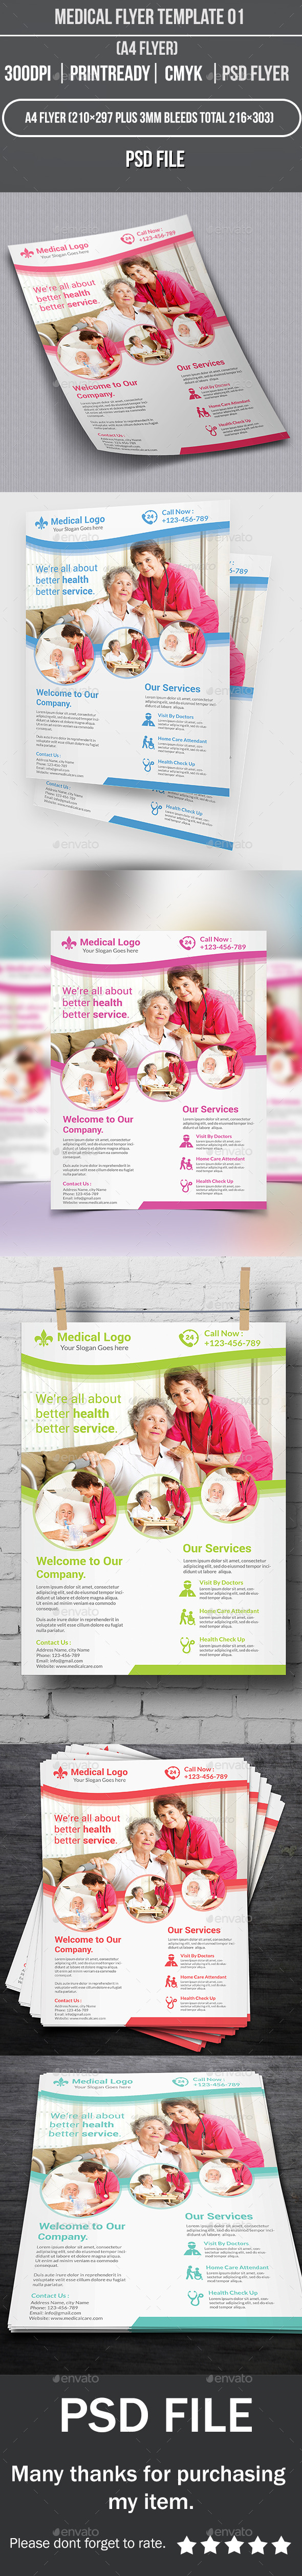 Medical Flyer Template 01 - Corporate Flyers